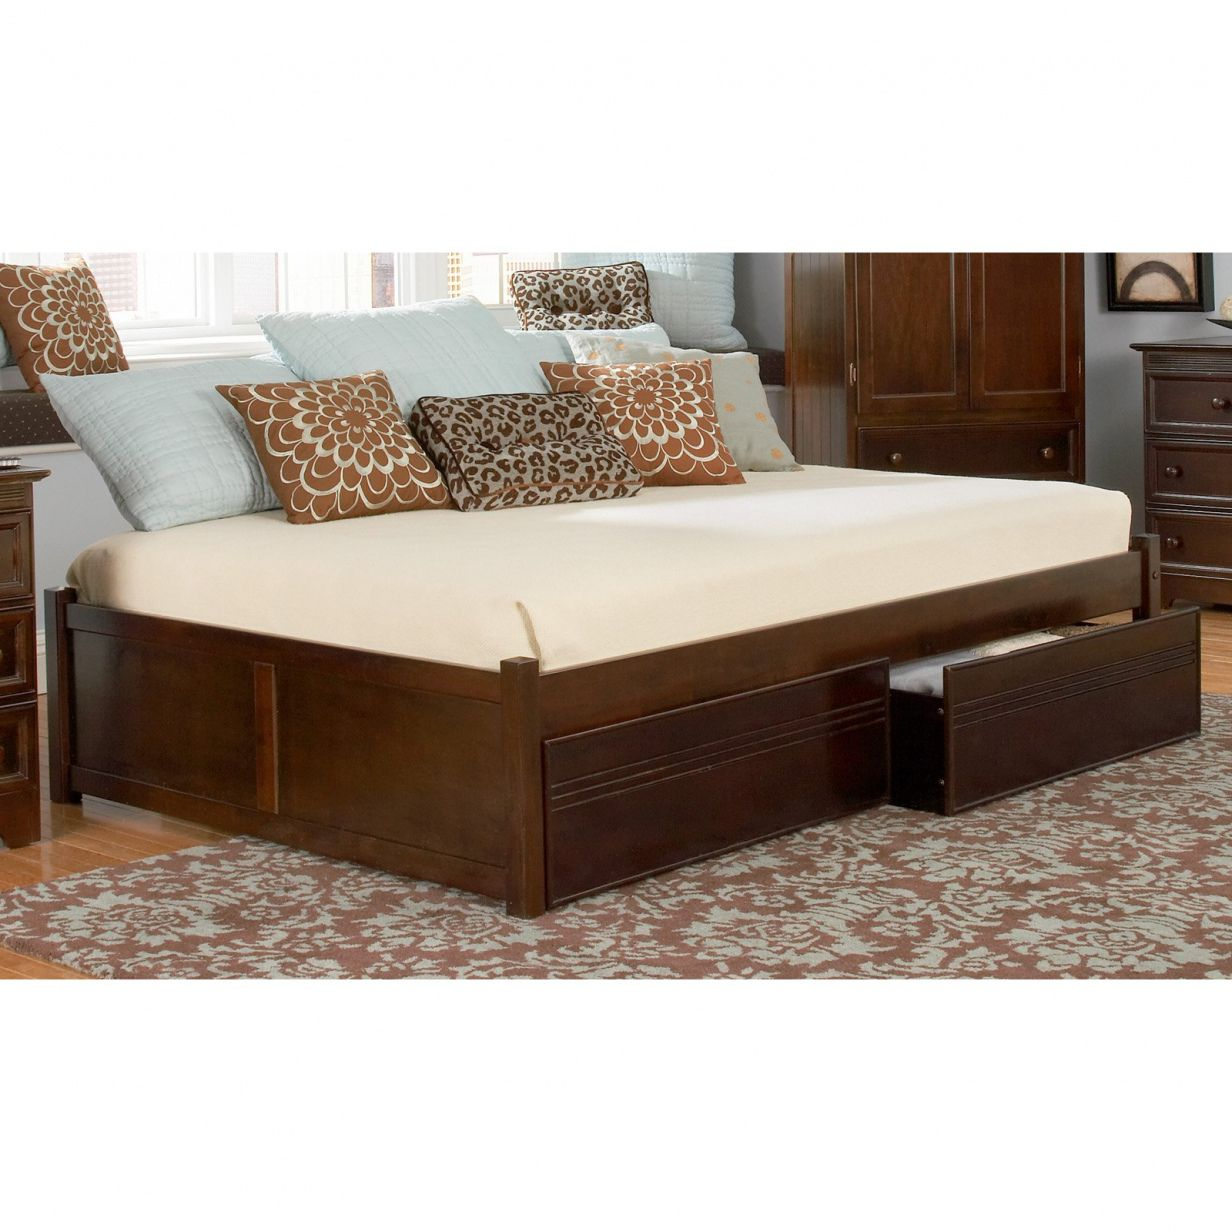 Luxury Queen Daybed Frame Check more at http//dustwar